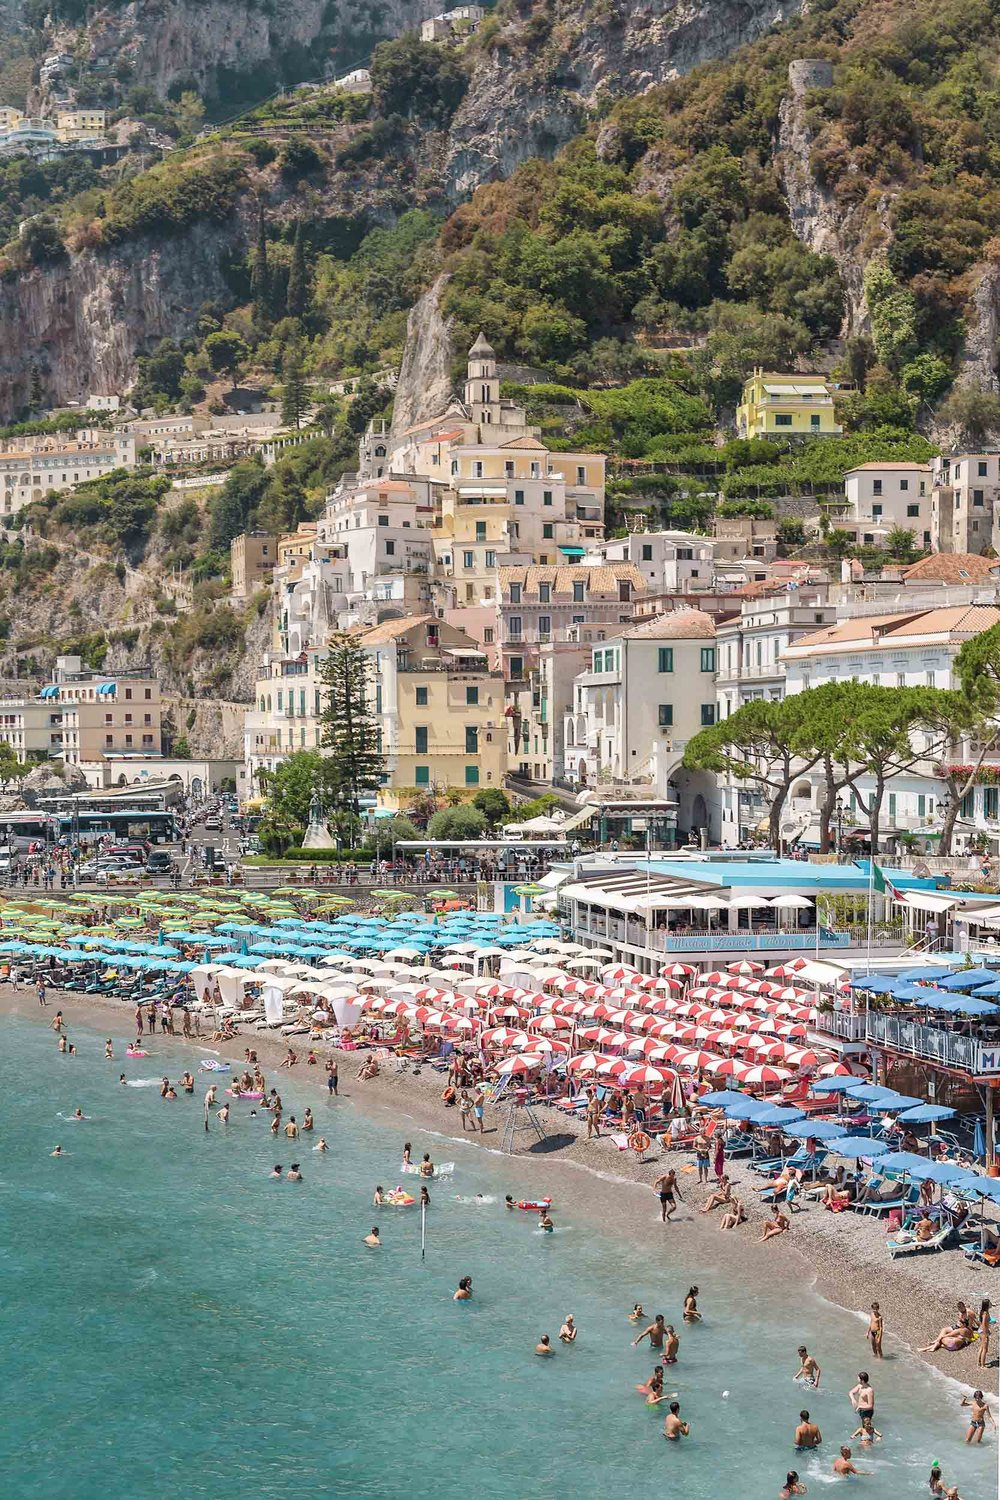 Endless beaches in Amalfi